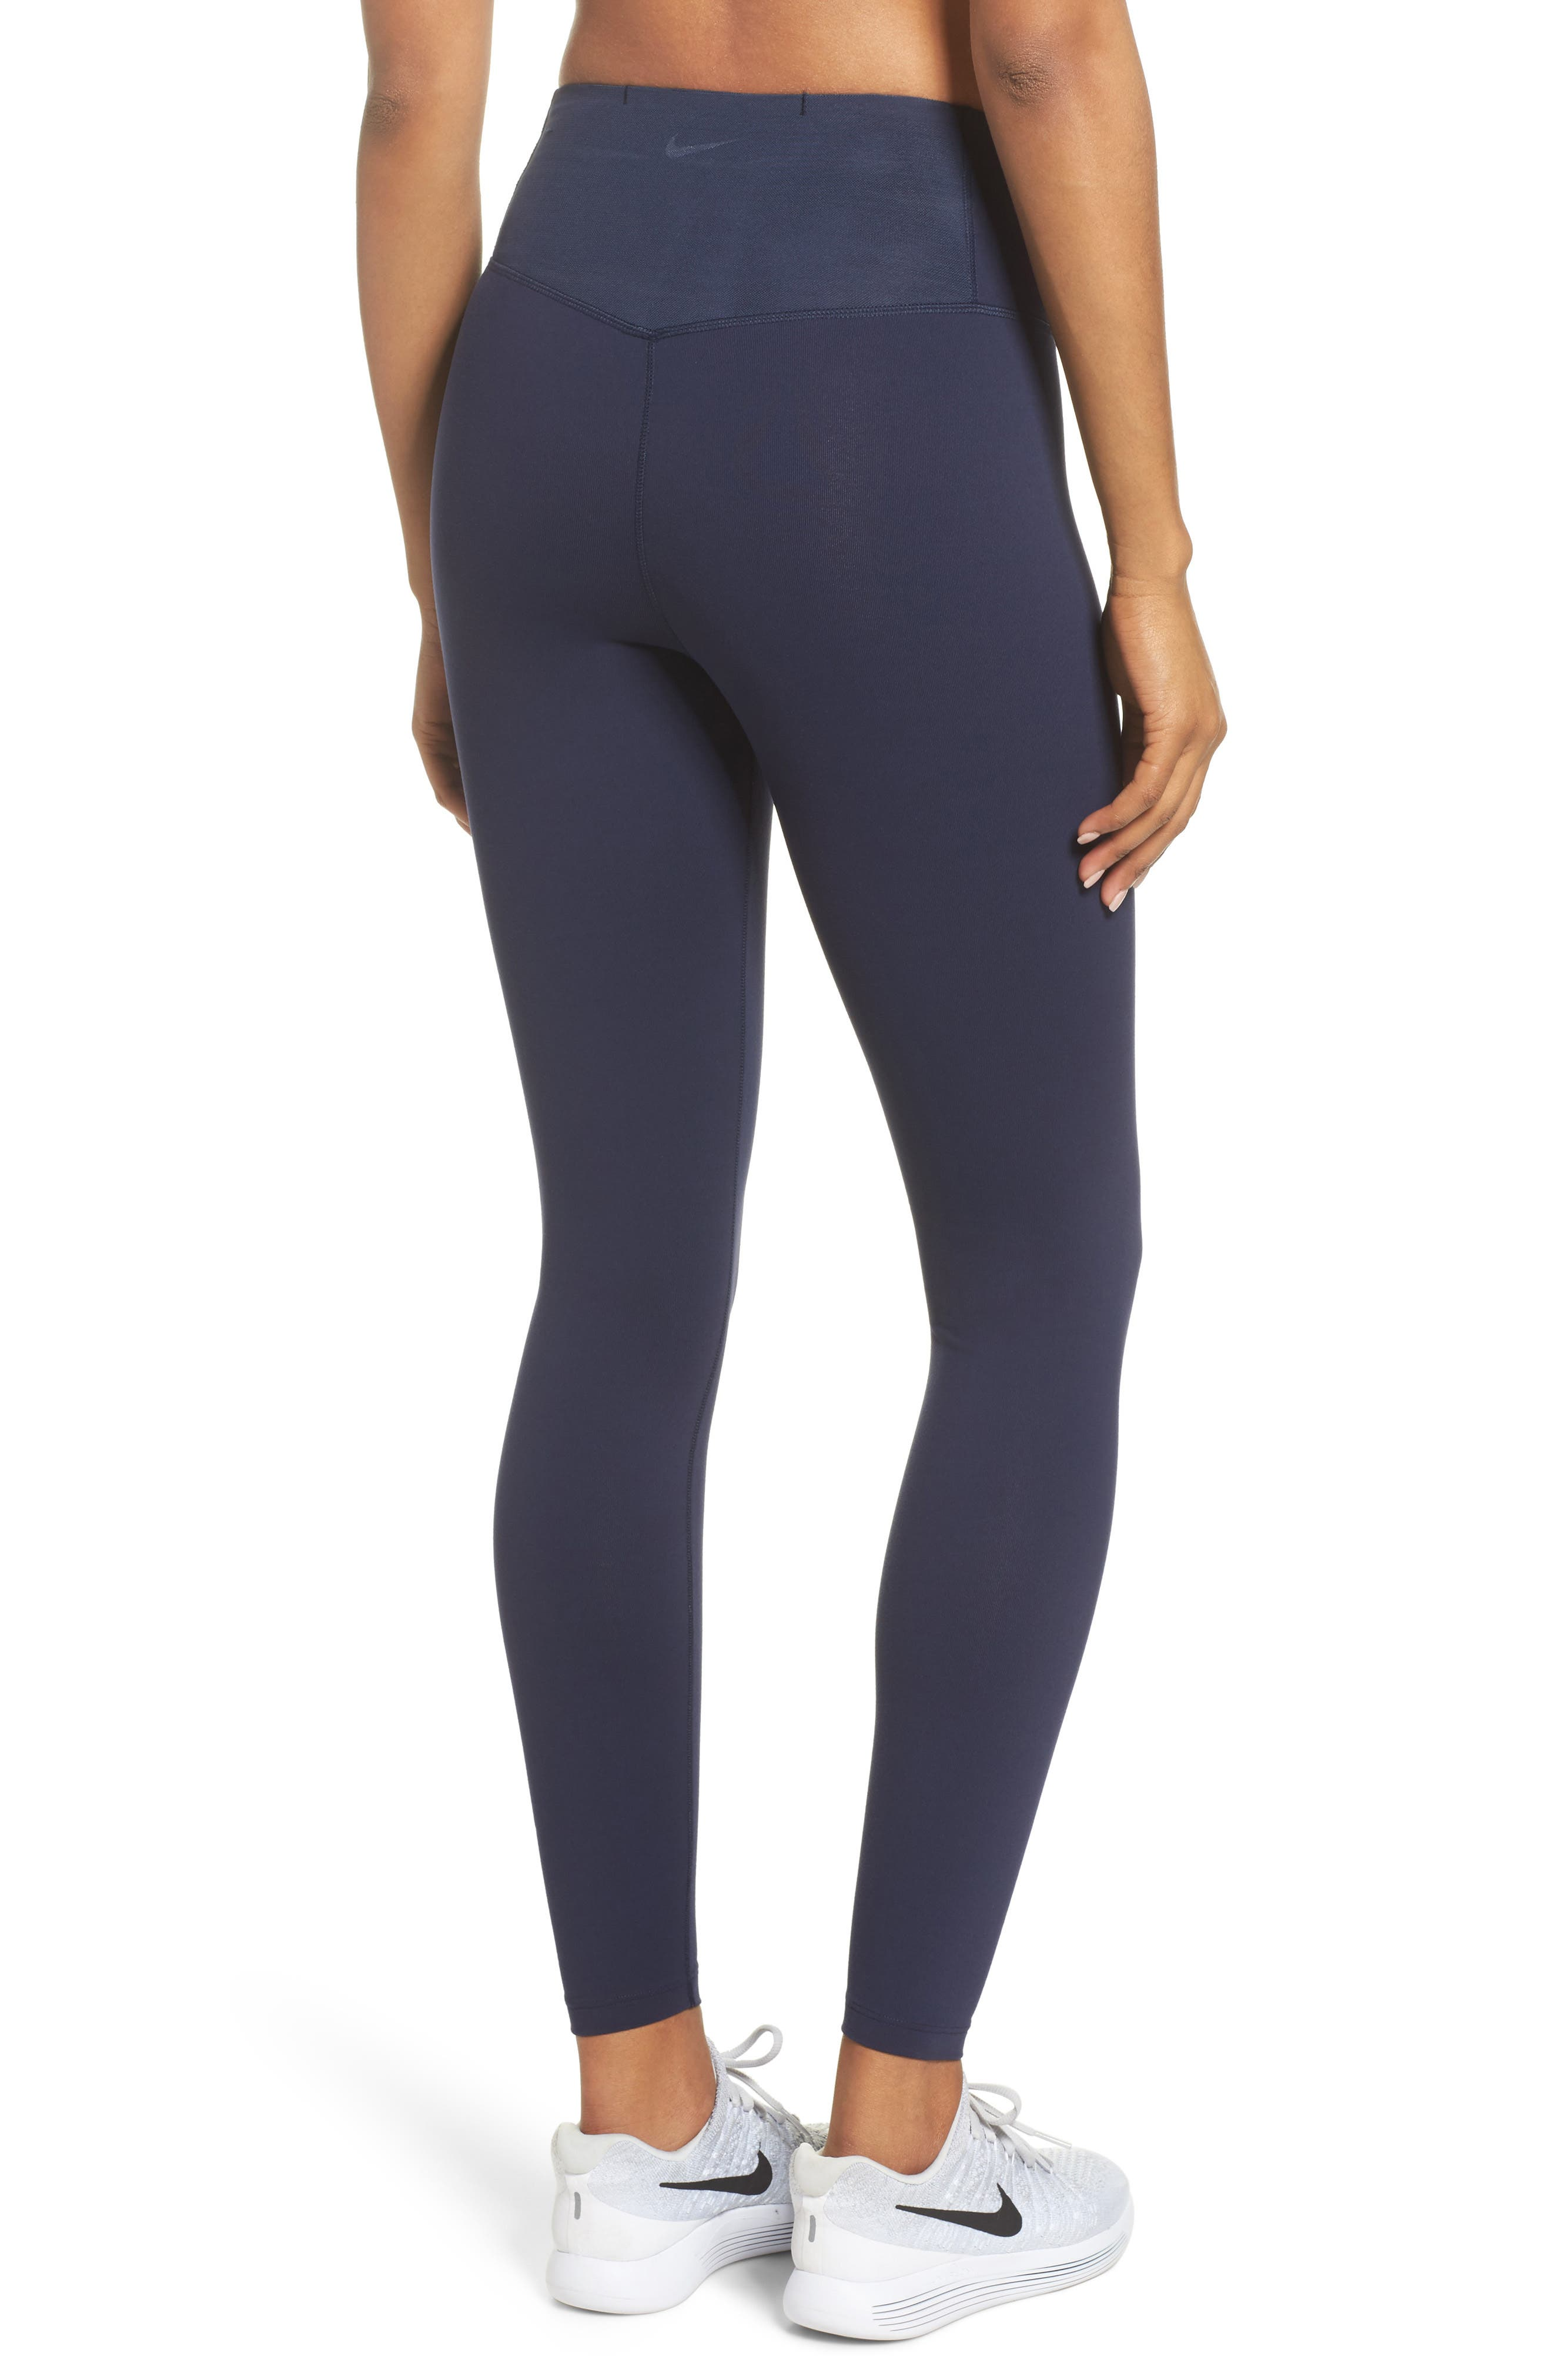 Sculpt Lux Training Tights,                             Alternate thumbnail 2, color,                             Obsidian/Clear